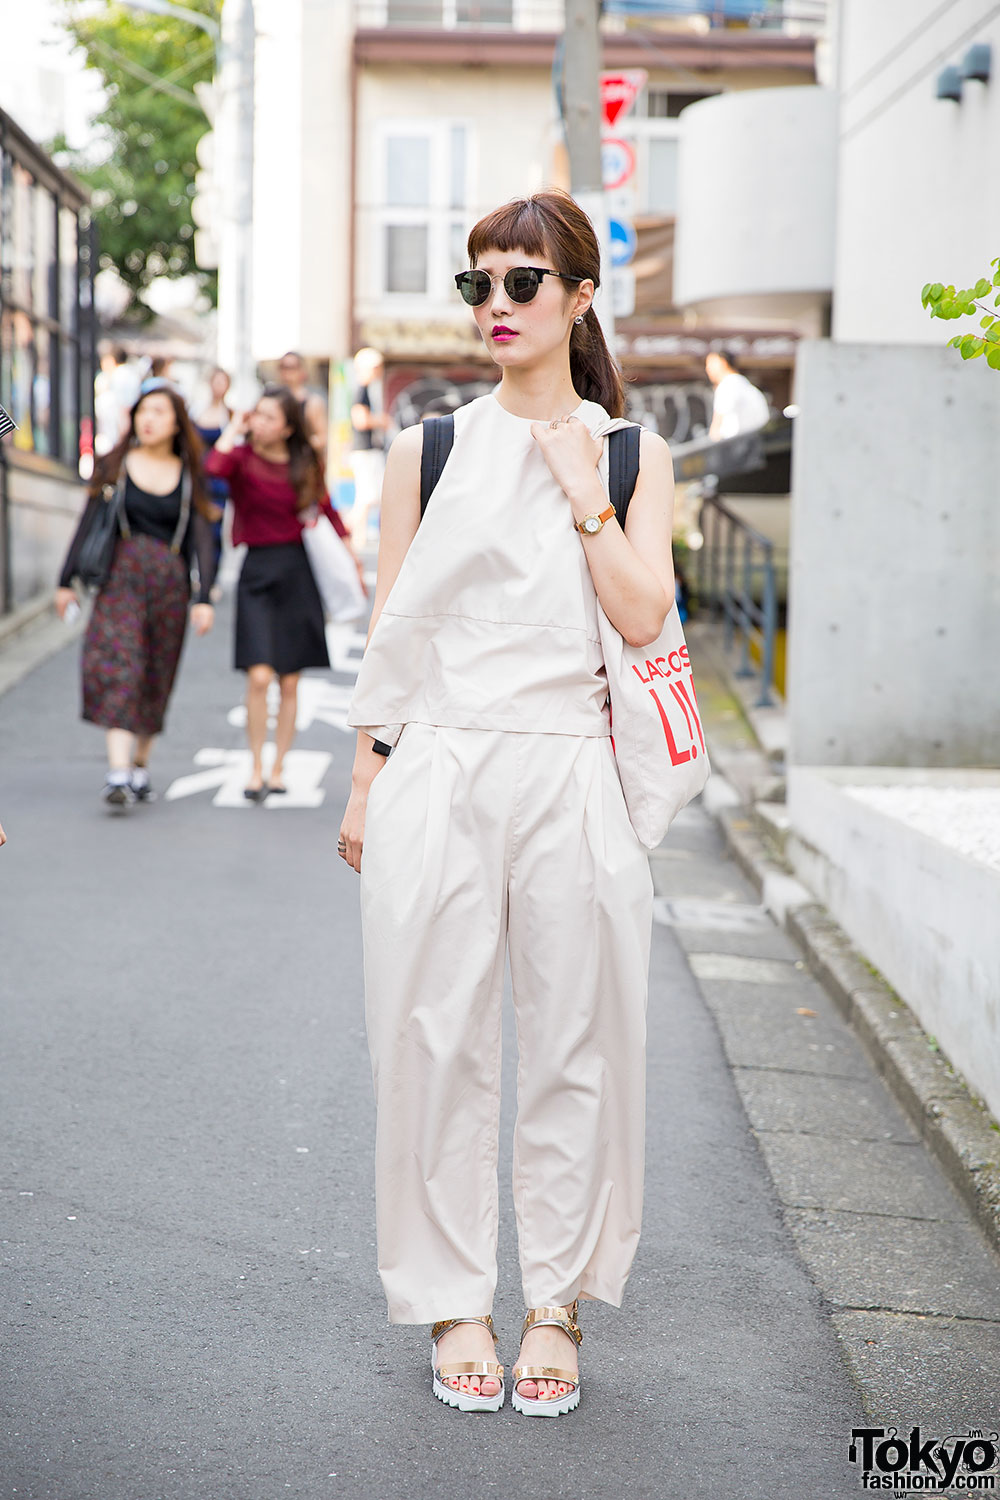 Harajuku Girl In Minimalist Look W Gold Sandals Marc Jacobs Bag